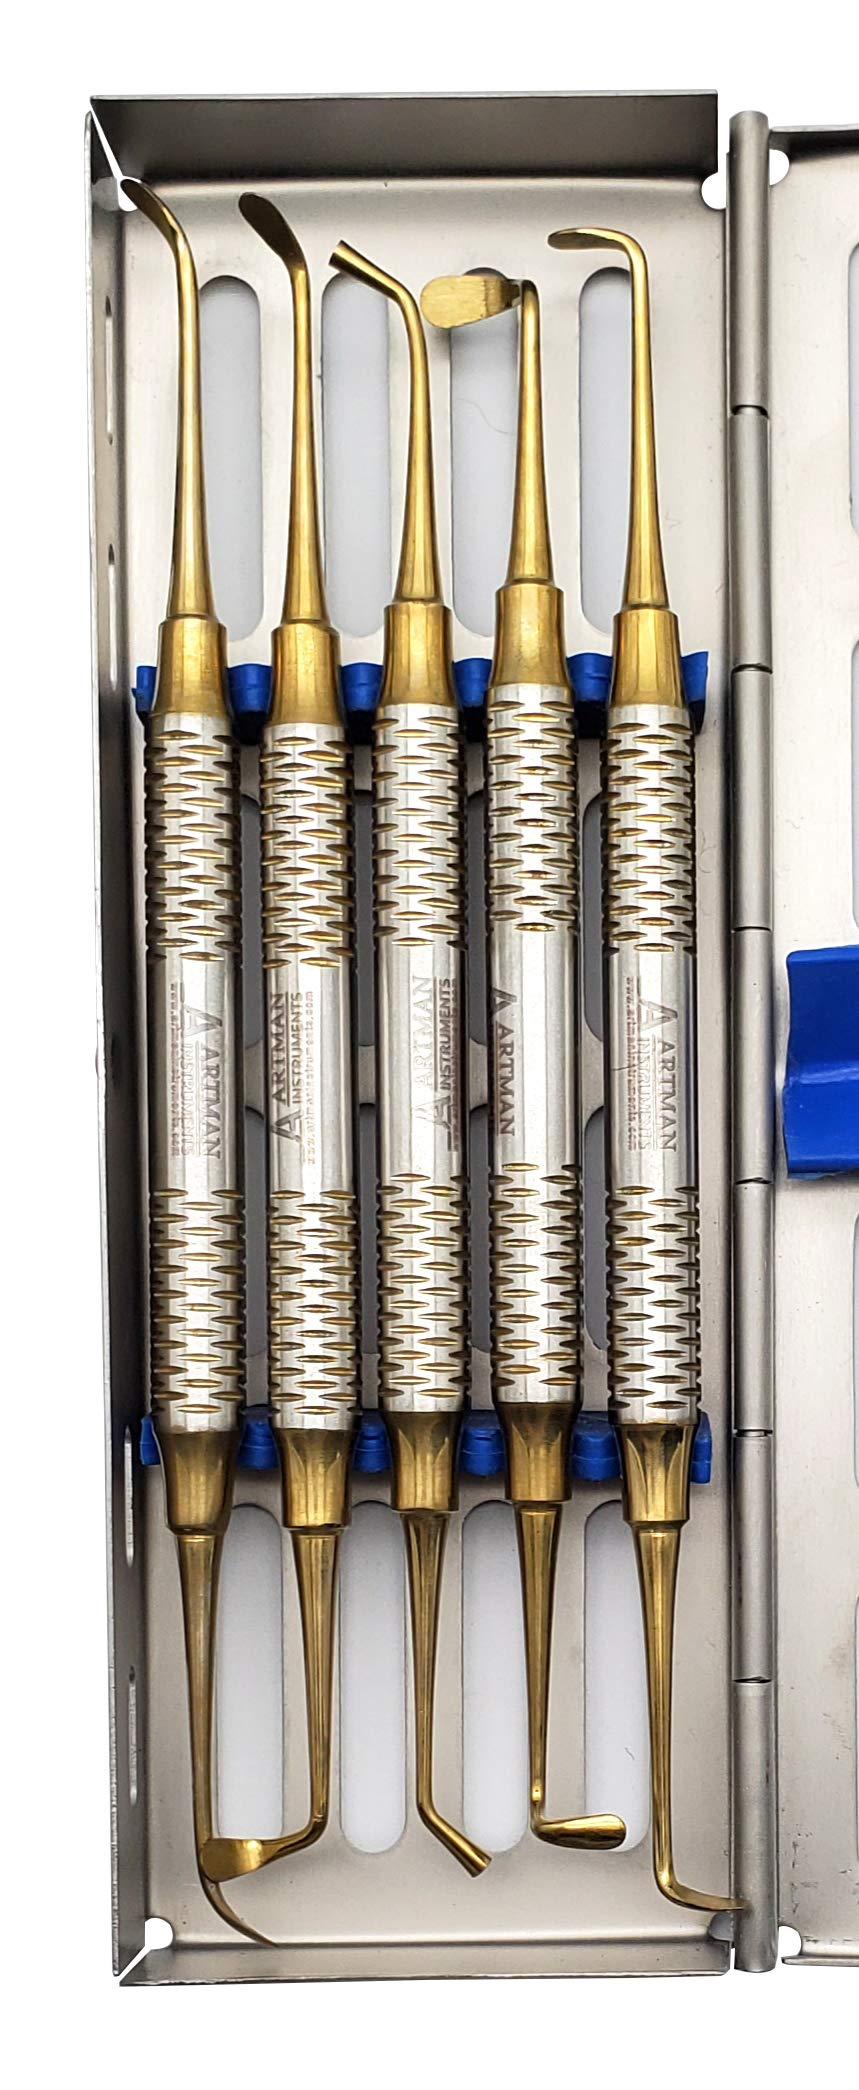 Sinus Lift Kit (5 pcs) in Stainless Steel Cassette Gold Plated for Implant Dental use by Wise Linkers